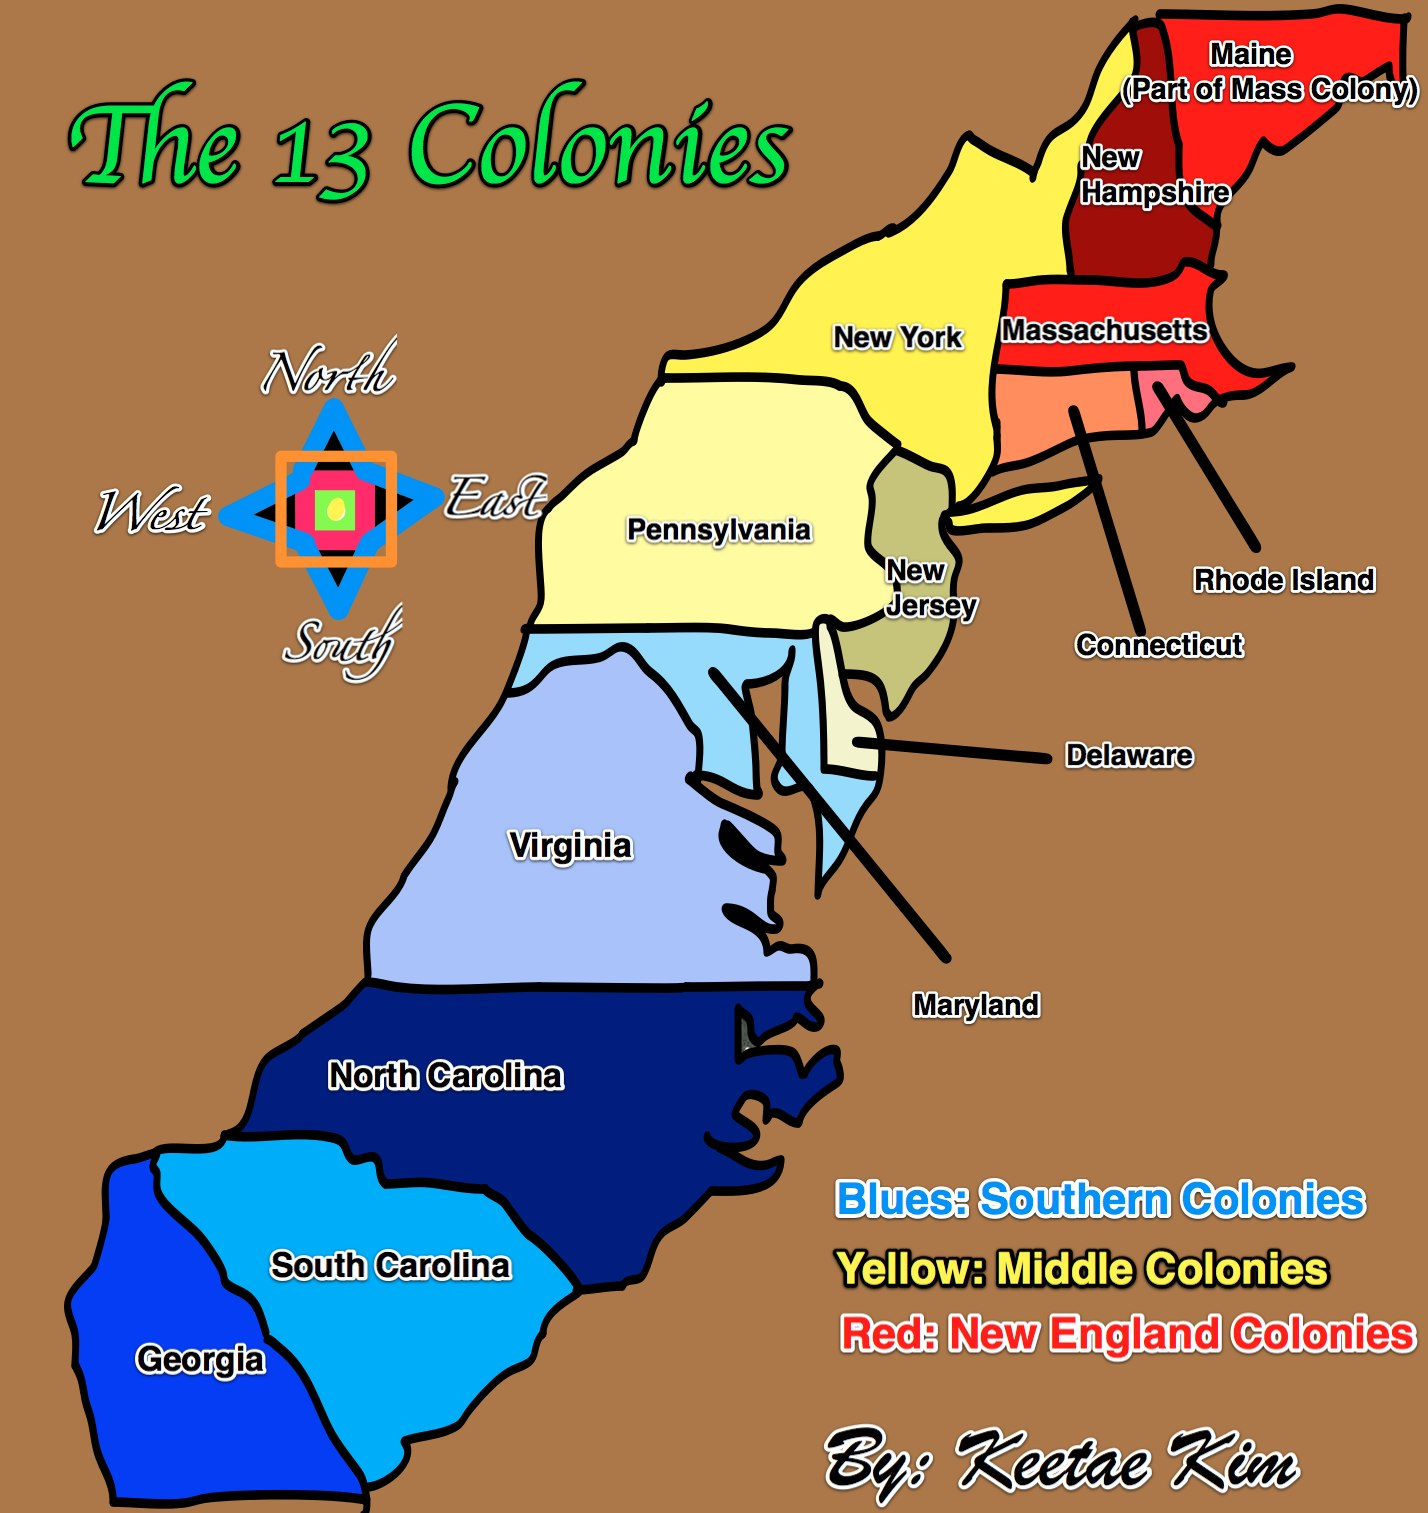 the colonies of england Thirteen colonies were originally part of it,  the 13 colonies were divided into three: new england colonies, middle colonies and southern colonies.